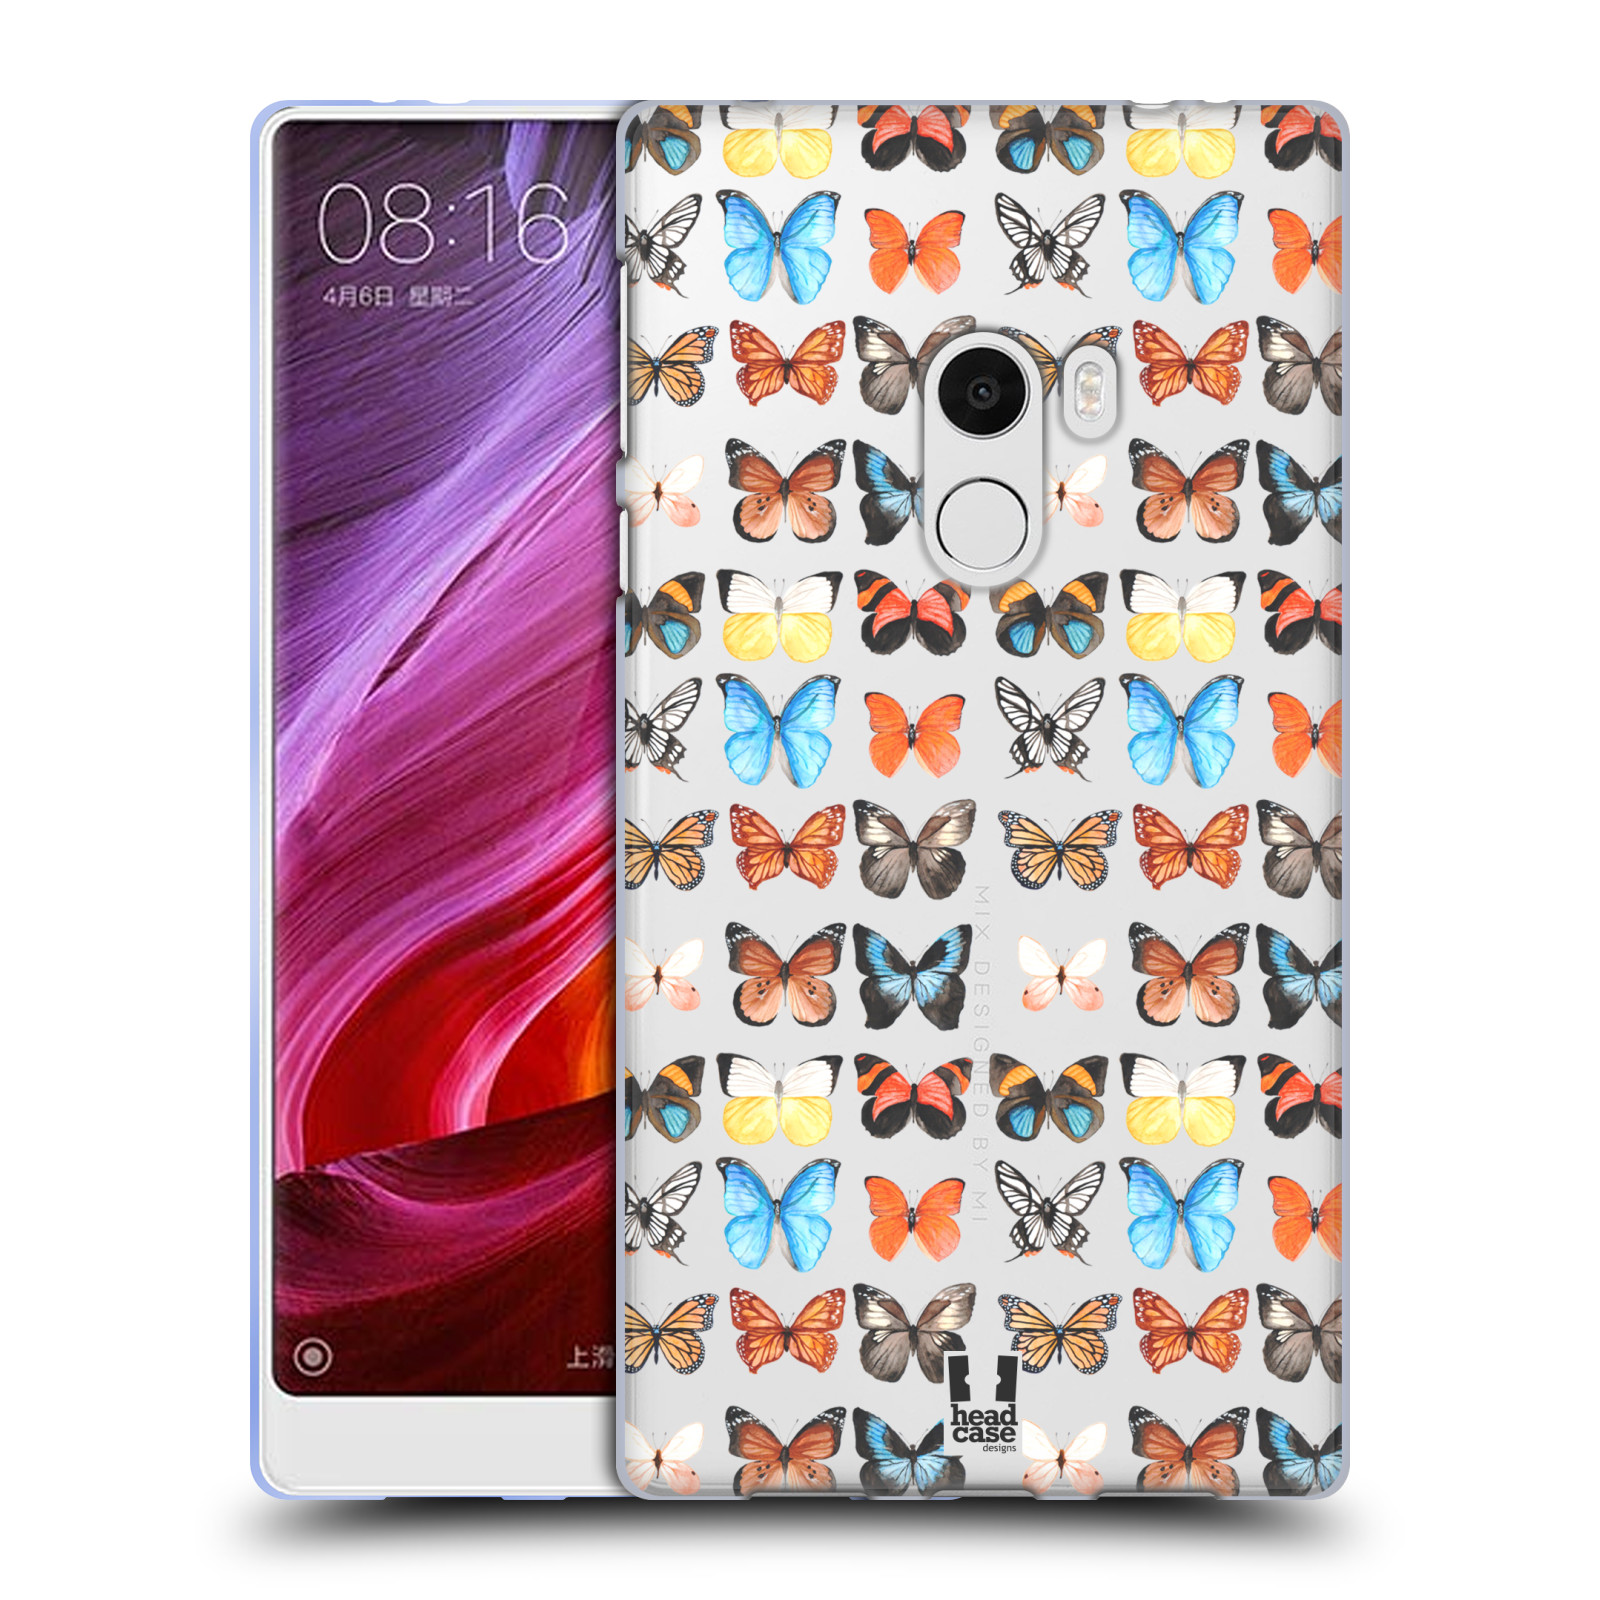 HEAD-CASE-DESIGNS-BUTTERFLY-PARADISE-SOFT-GEL-CASE-FOR-XIAOMI-PHONES